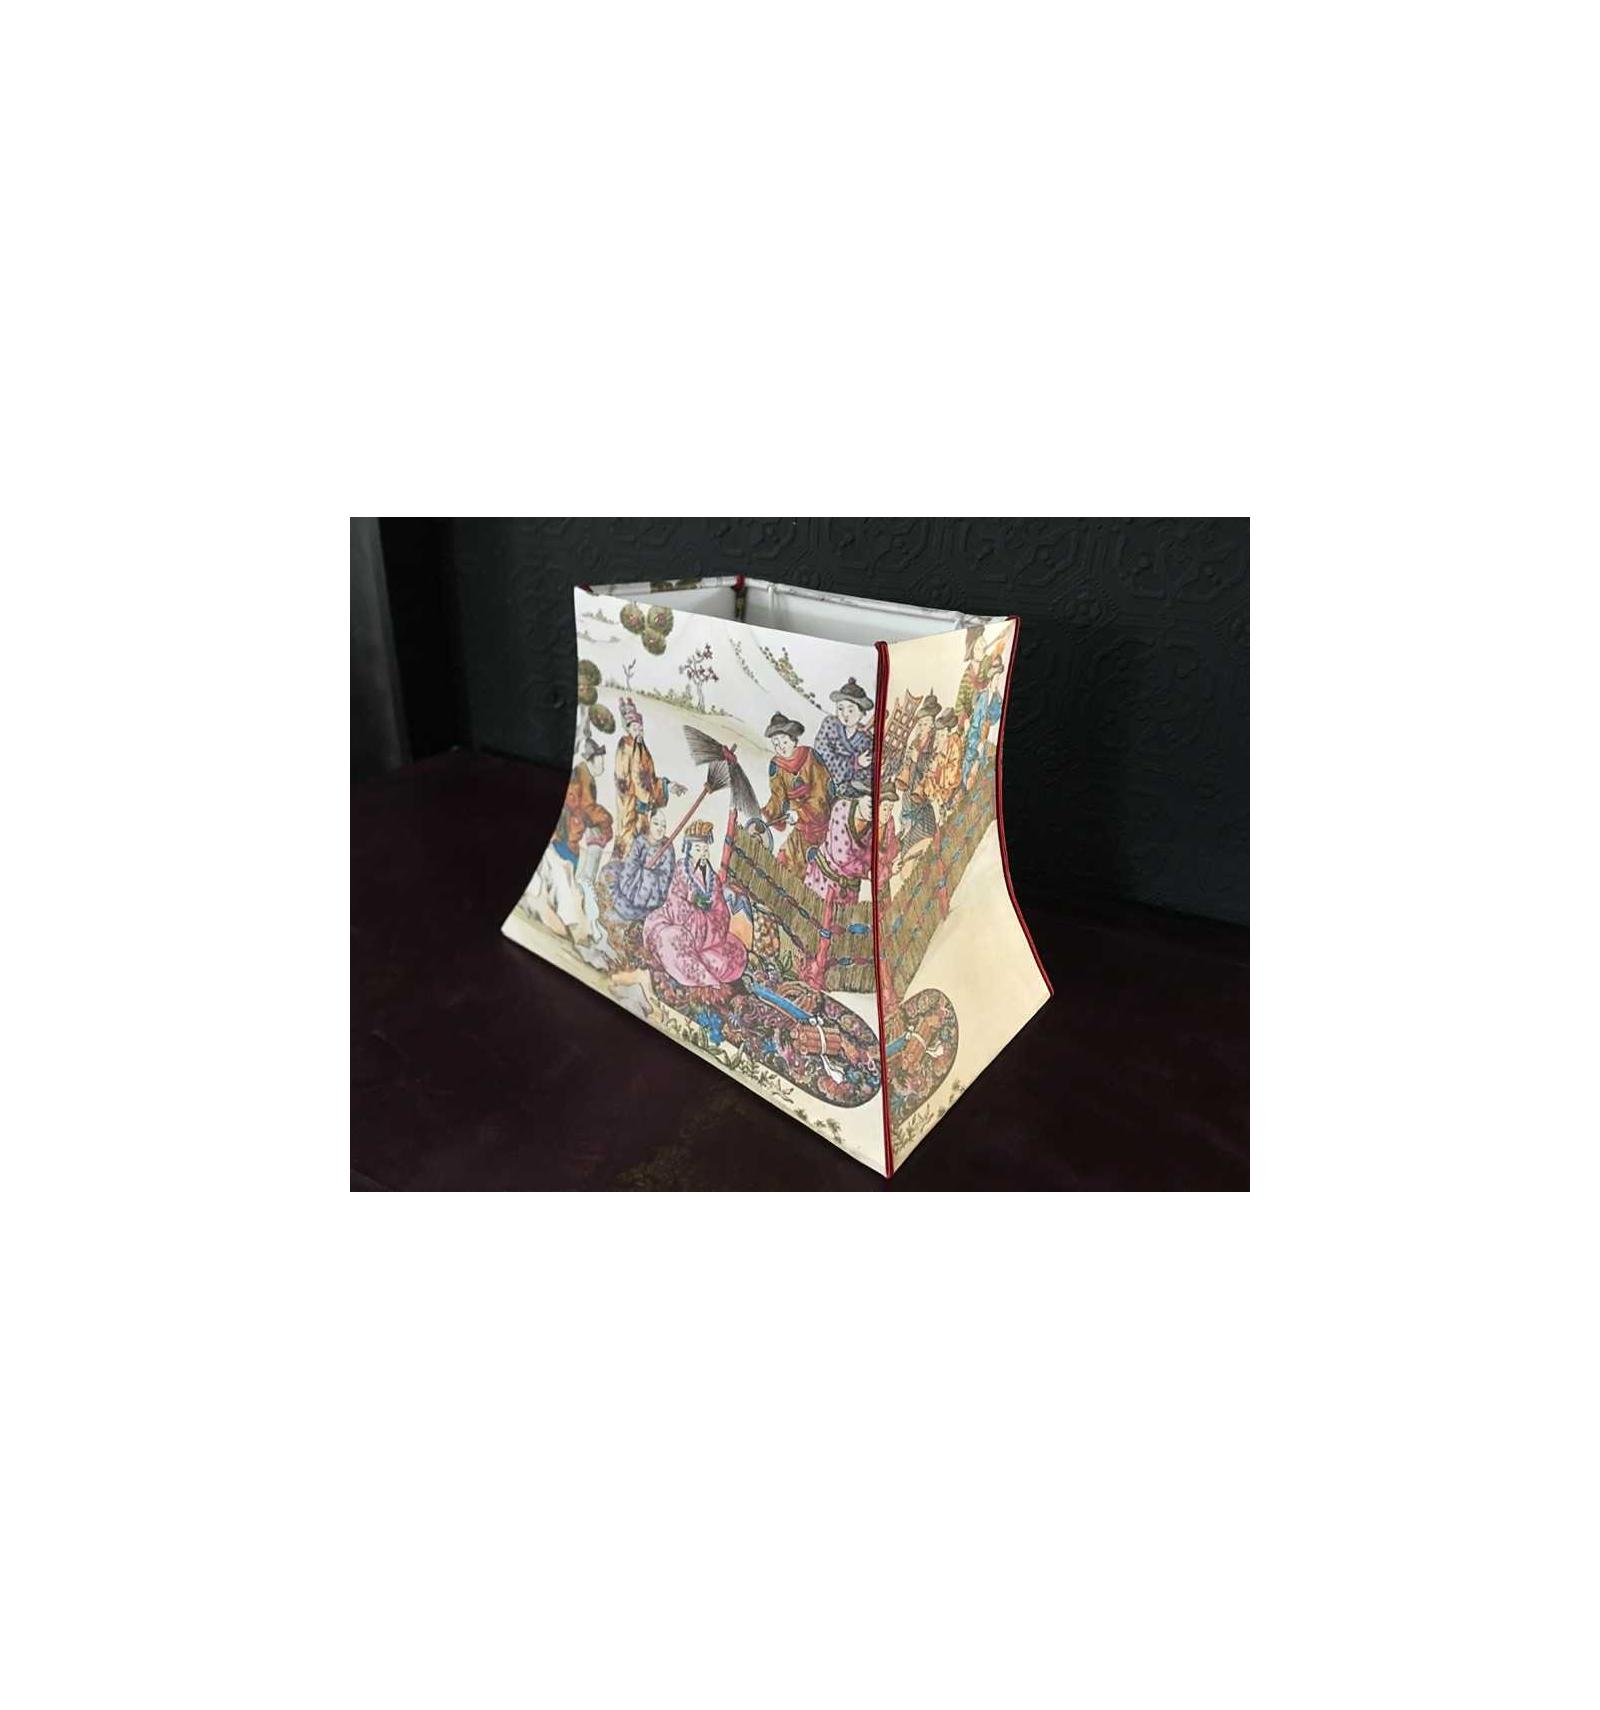 Abat jour pagode rectangulaire gravure chinoise - Belette ...